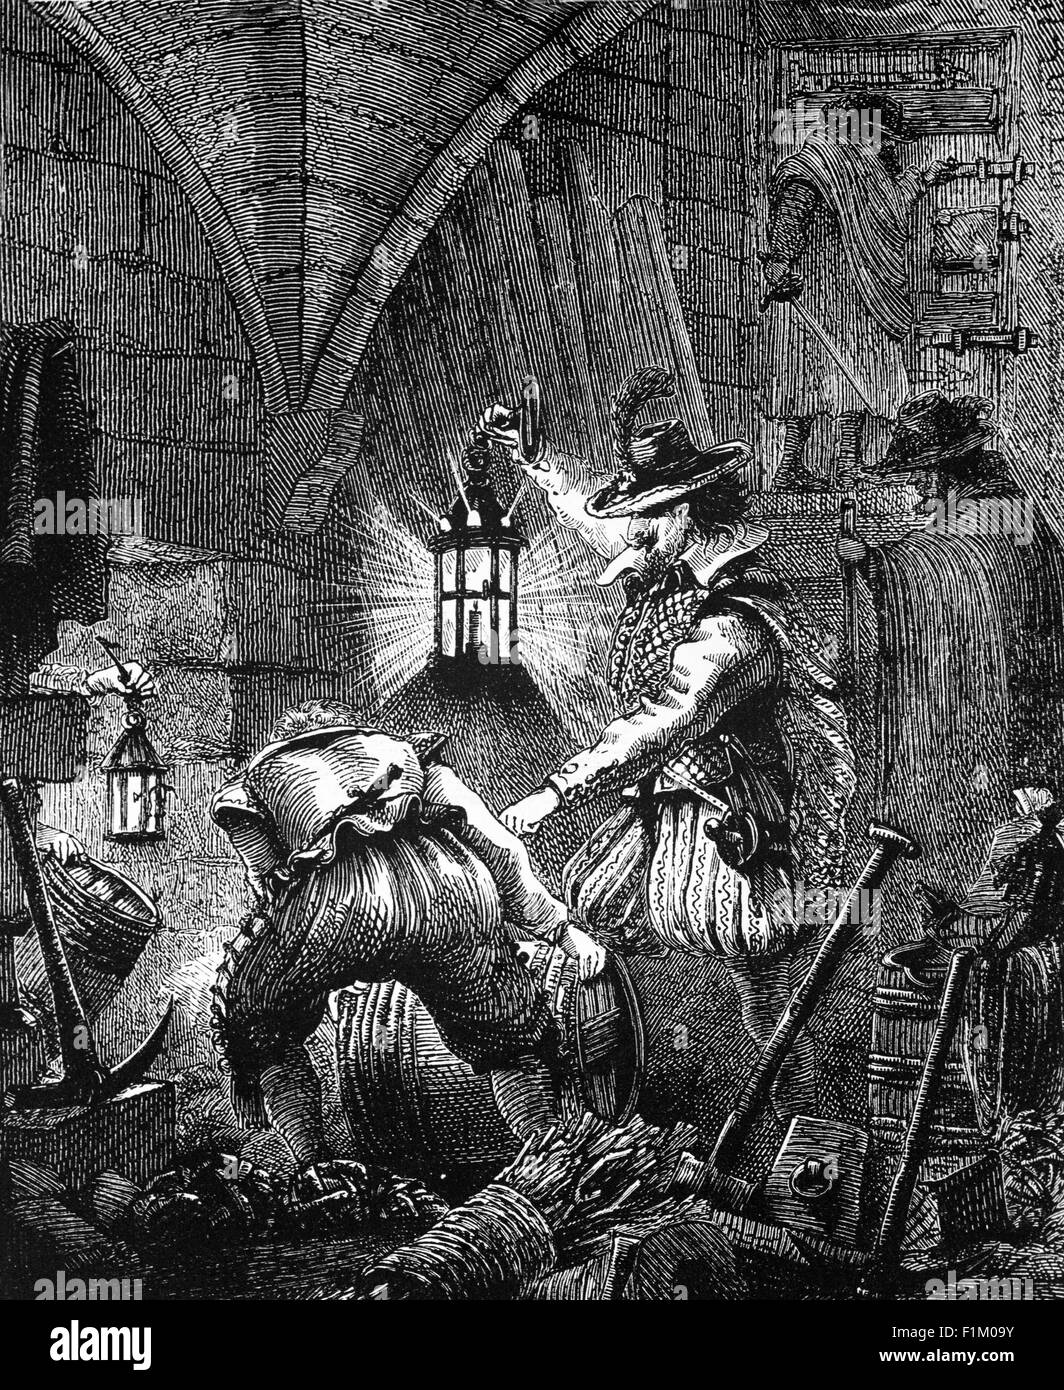 gunpowder plot All you need to know about the gunpowder plot of 1605 and why guy fawkes and robert catesby tried to blow up the houses of parliament.